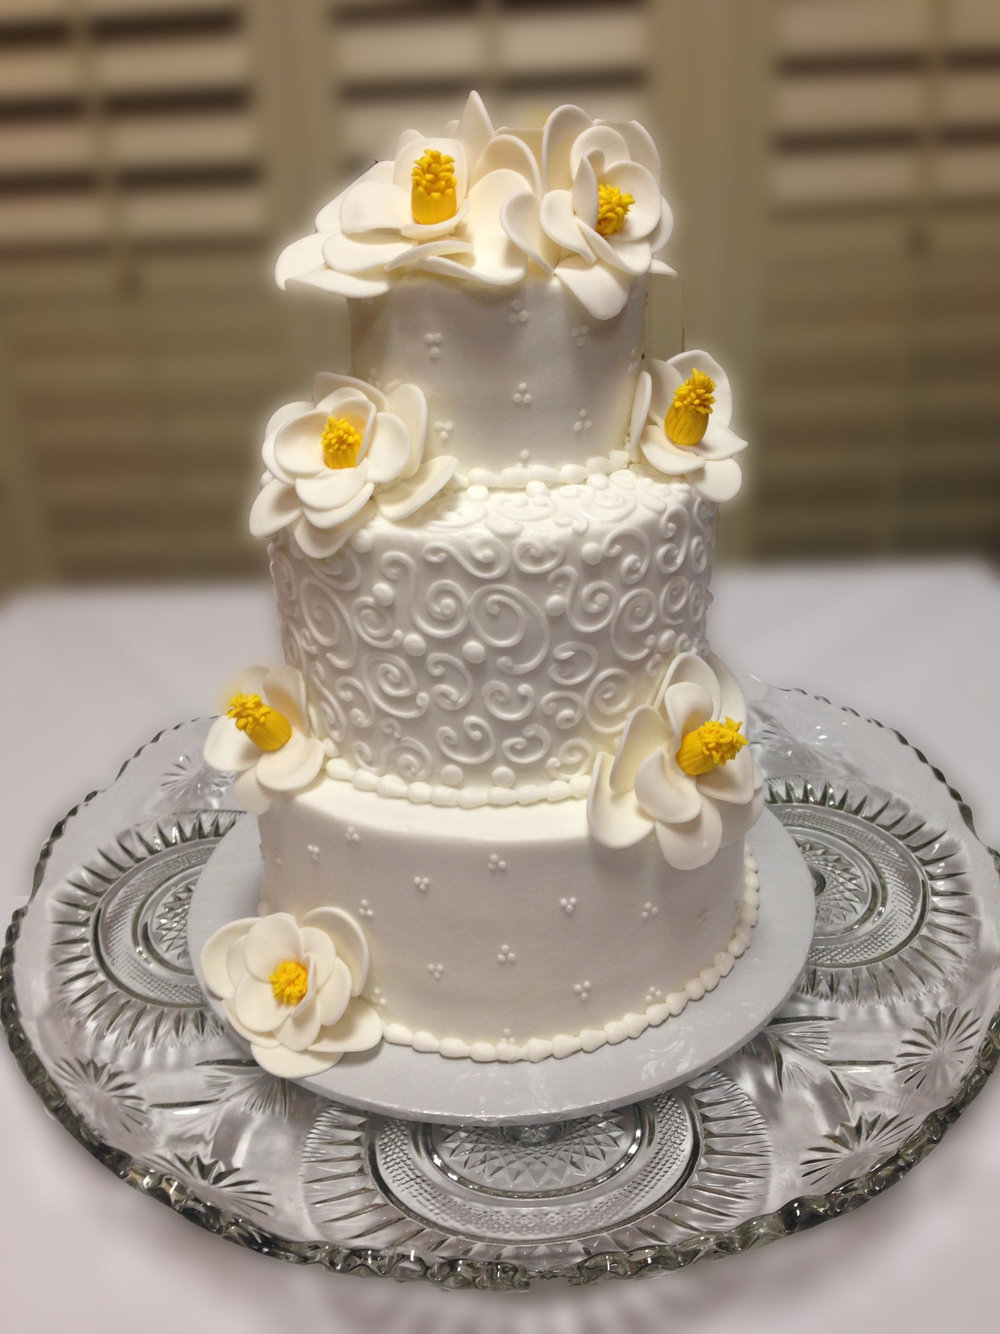 White, 3-tier cake with yellow floral accents